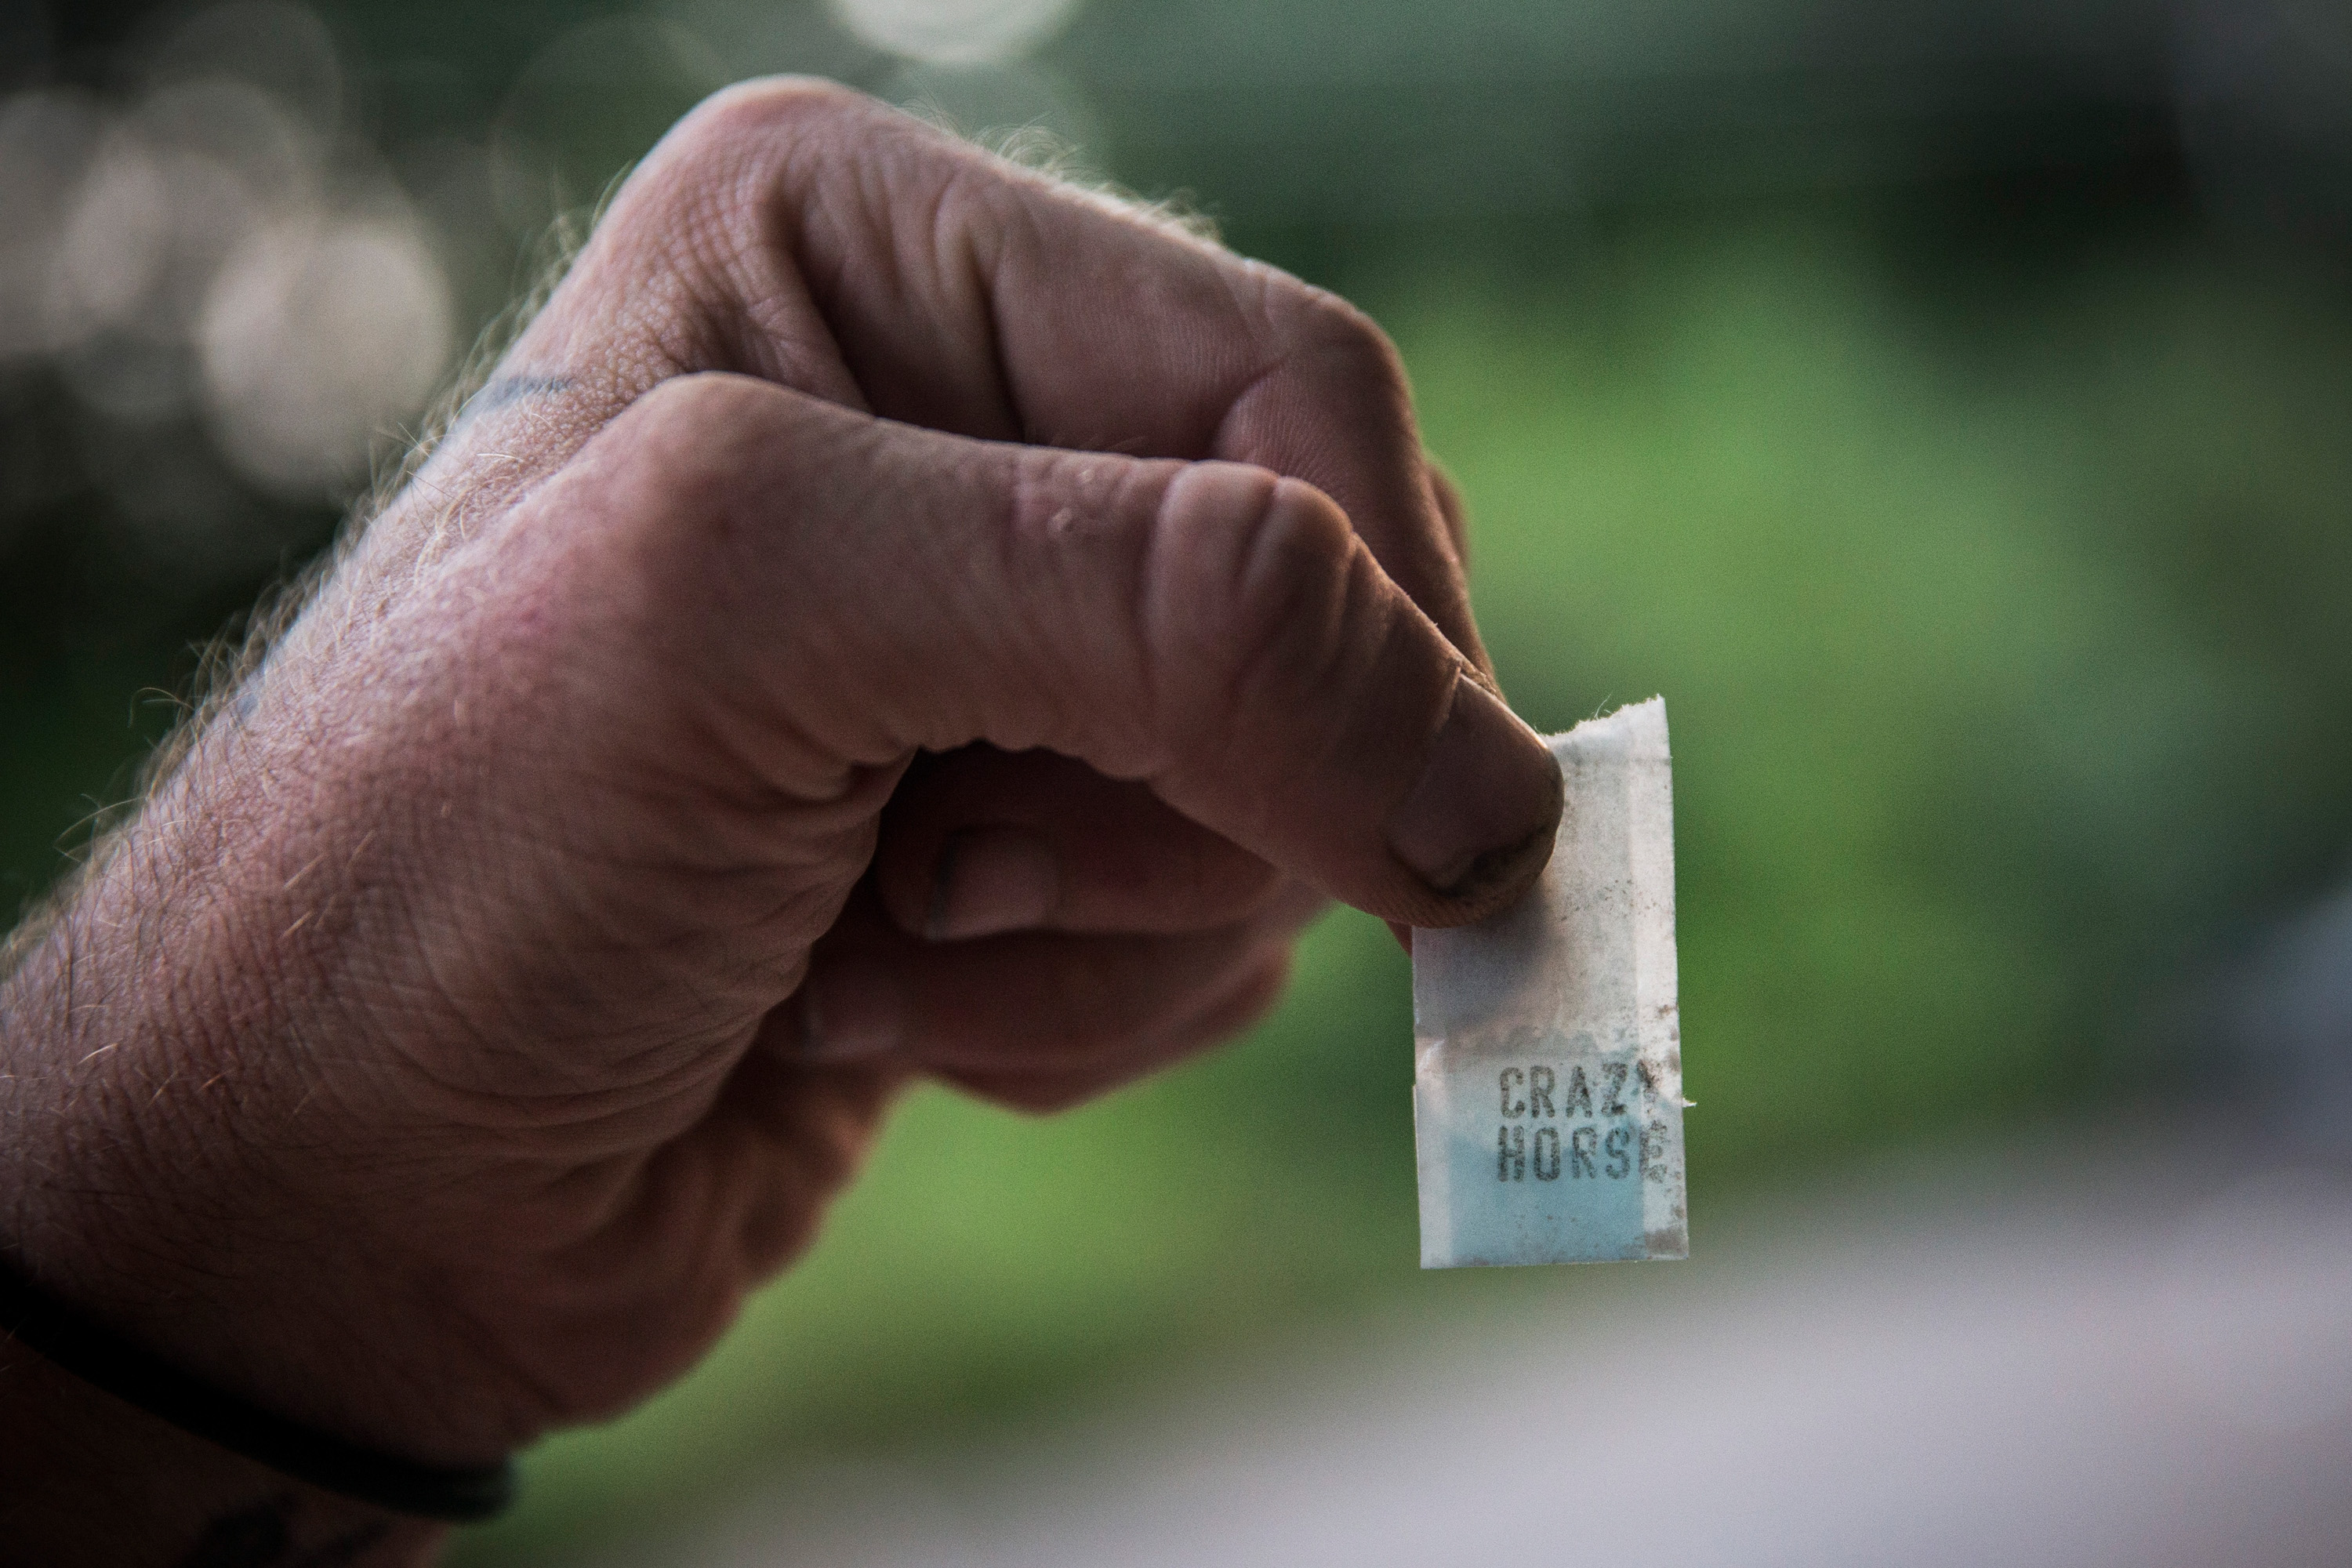 Reggy Colby, age 30 and a recovering heroin addict,  displays a bag heroin is sold in, on August 21, 2013 in Camden, New Jersey.